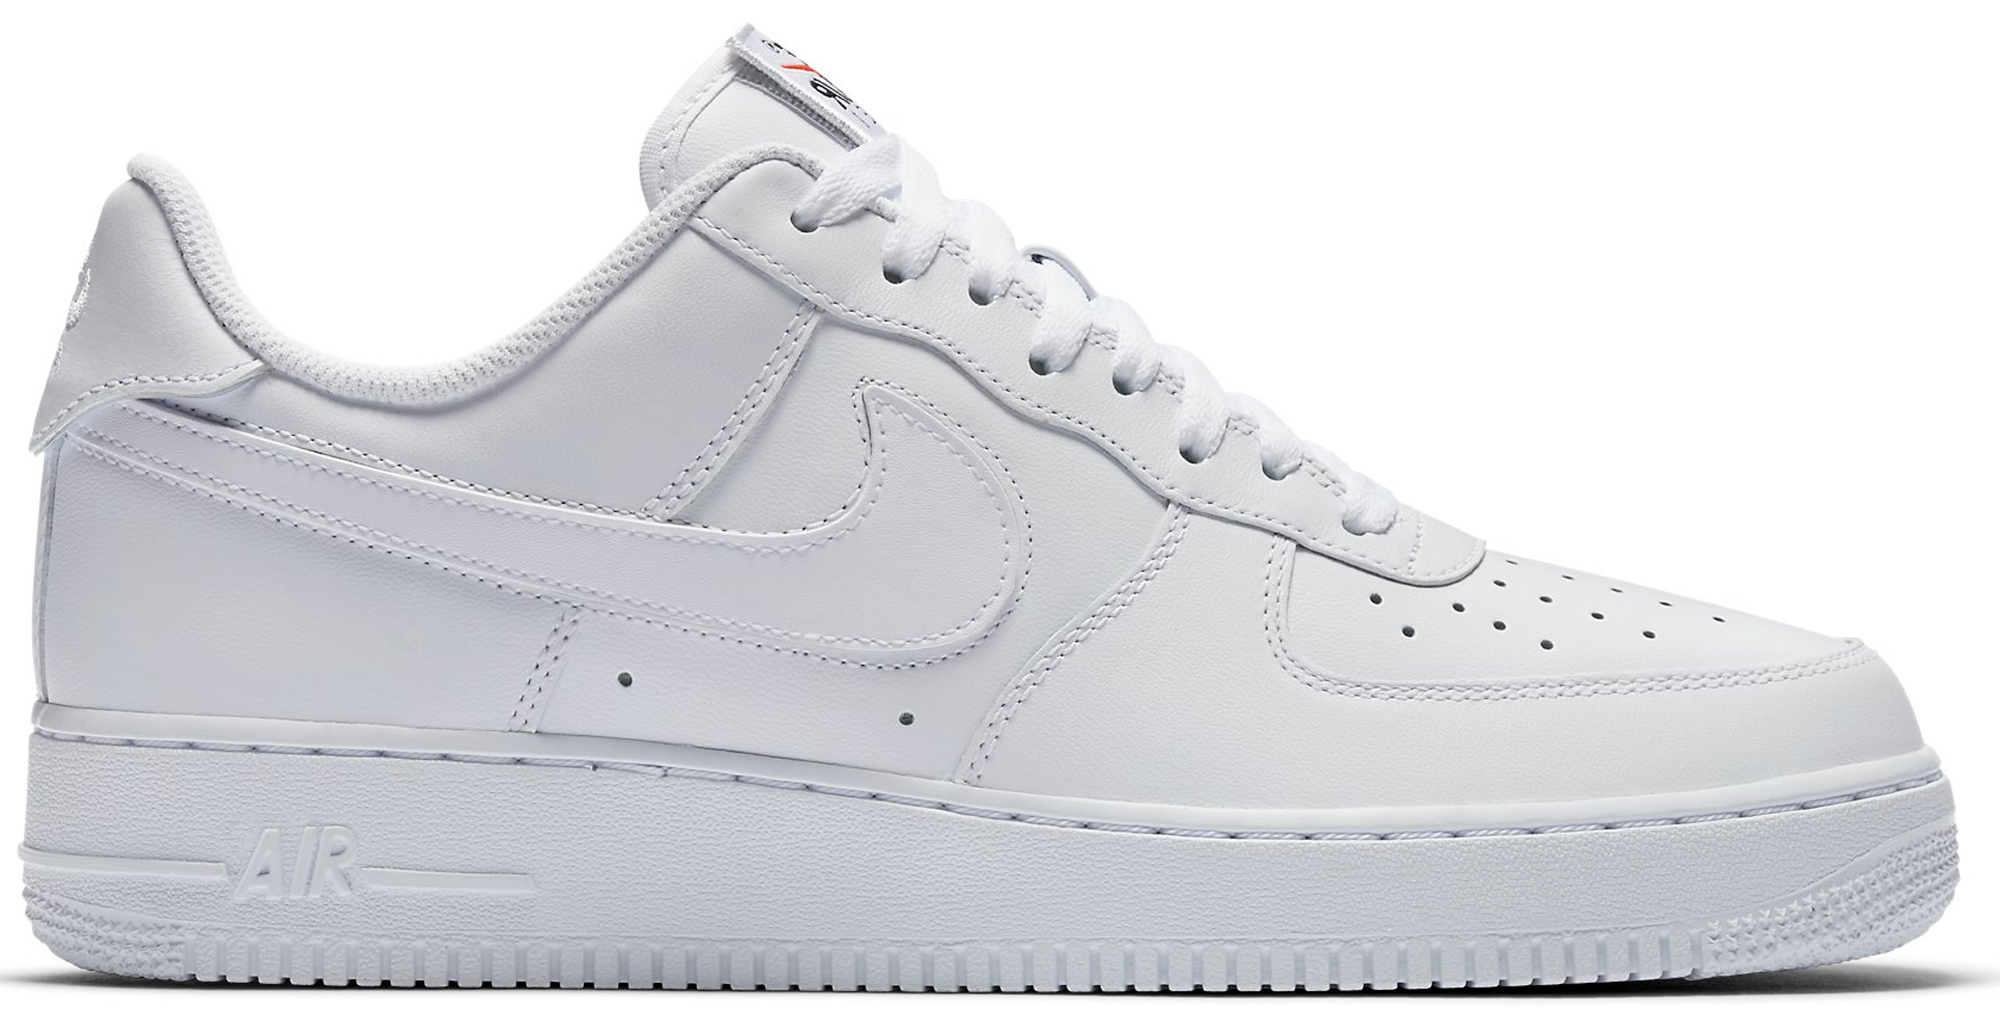 Air Force 1 Low Swoosh Pack All Star 2018 White Ah8462 102